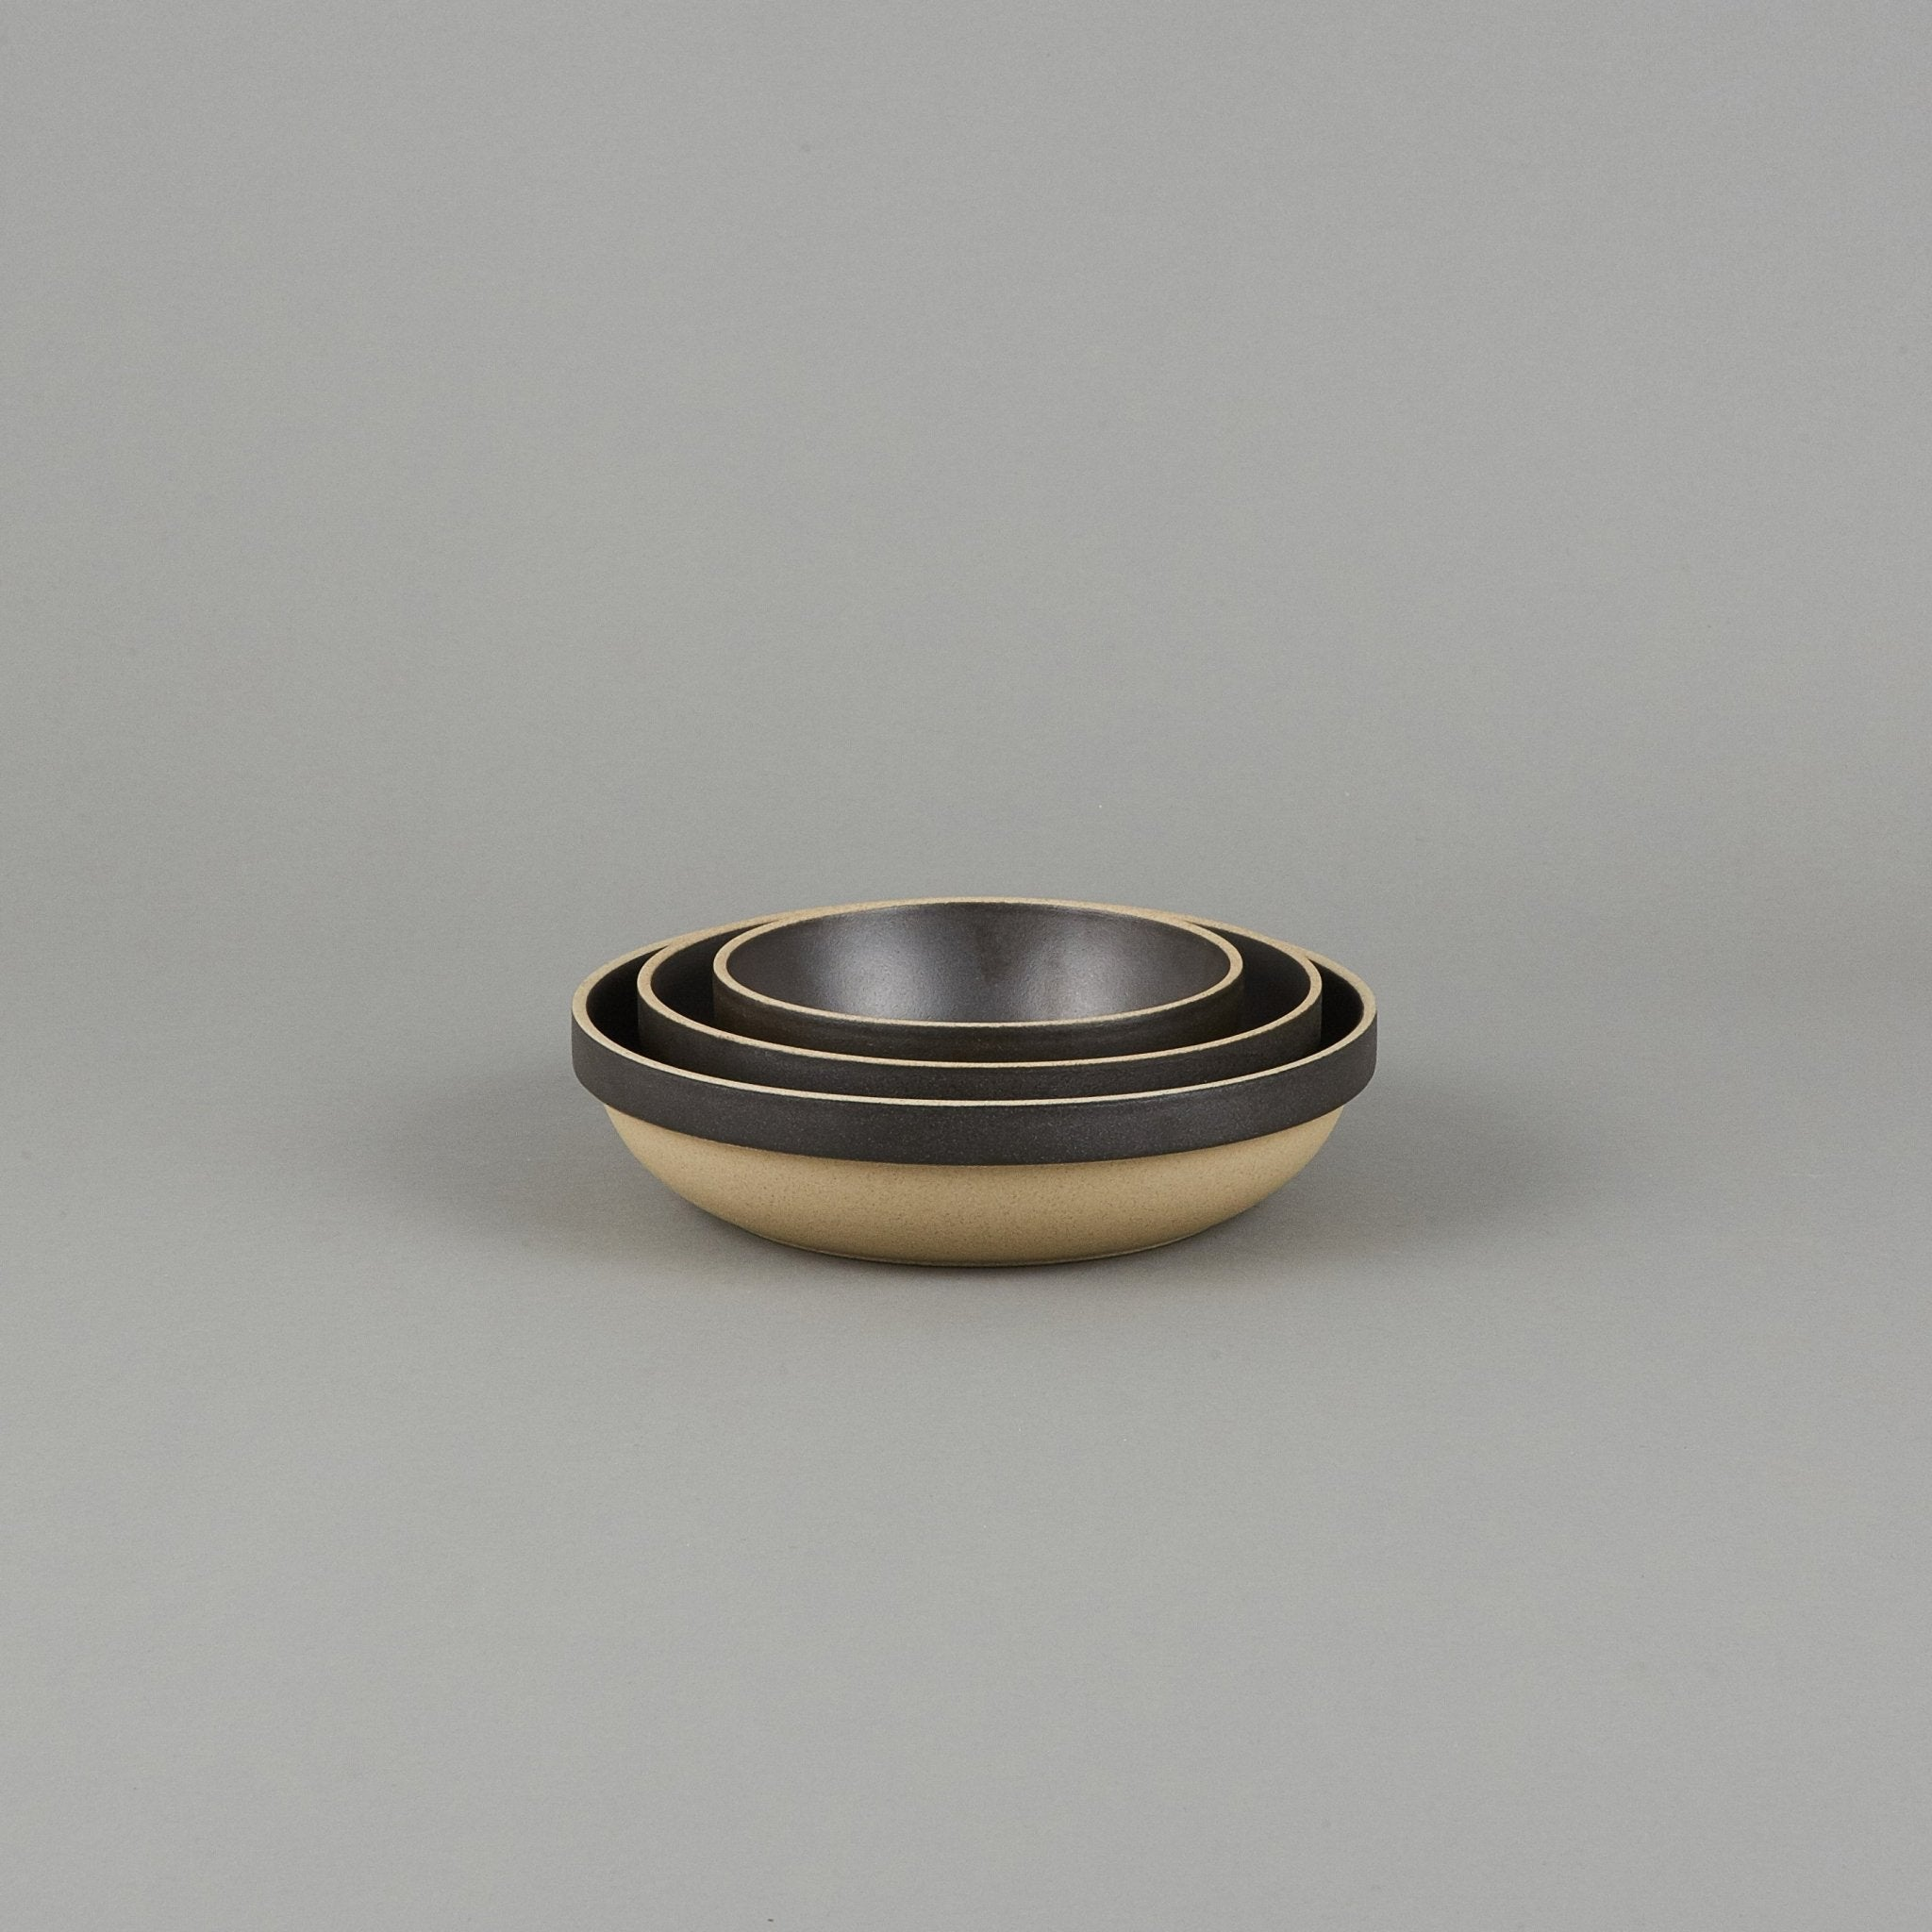 "HPB033 - Round Bowl Black ø 8.5/8"" - tortoise general store"